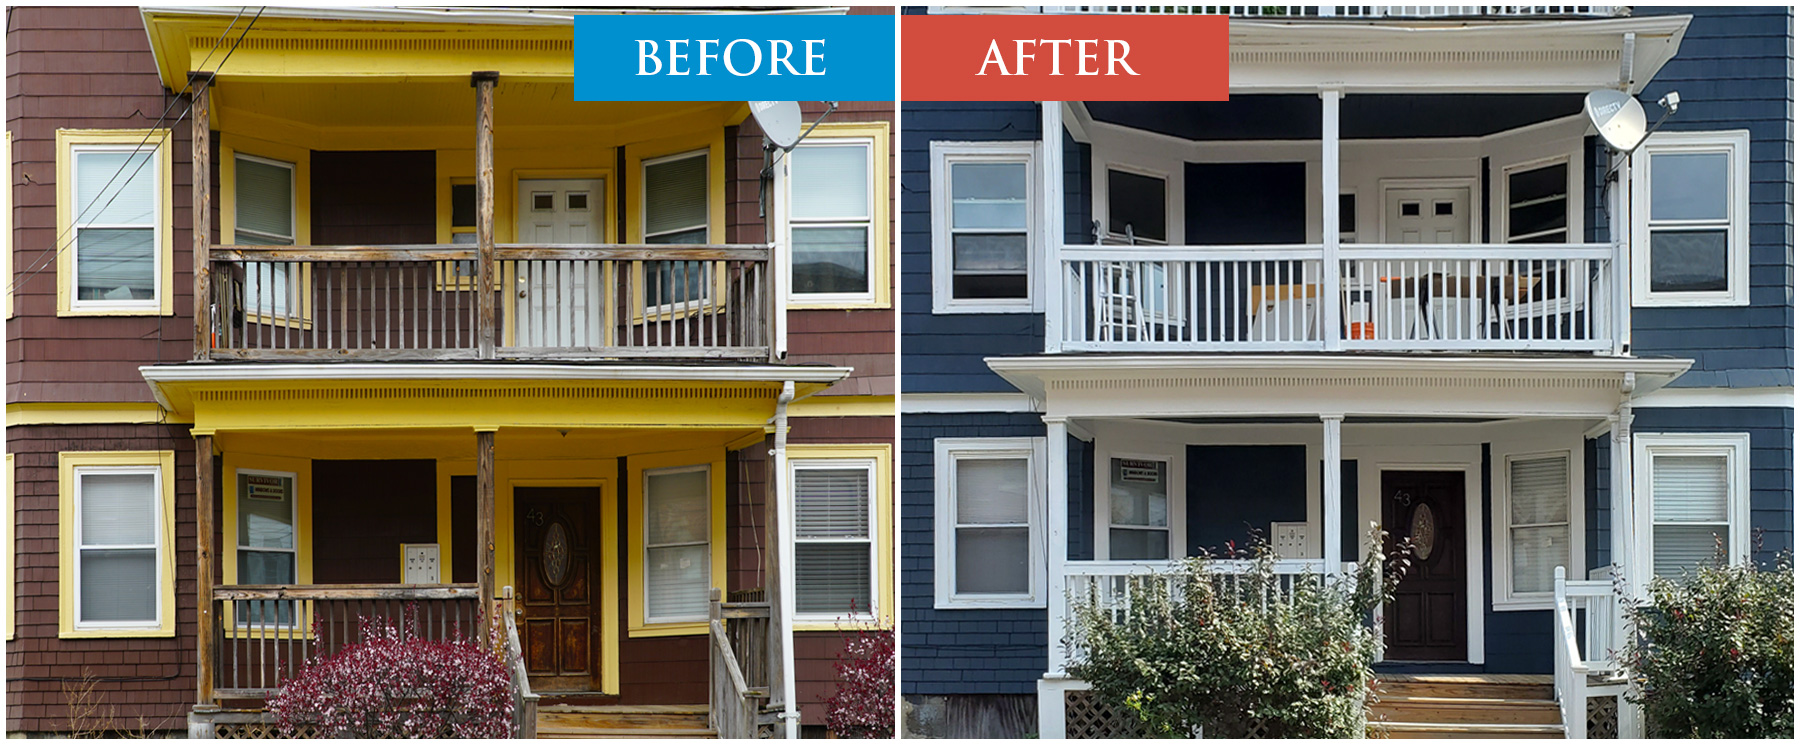 House Painting Transformation Before After Exterior Paint Job